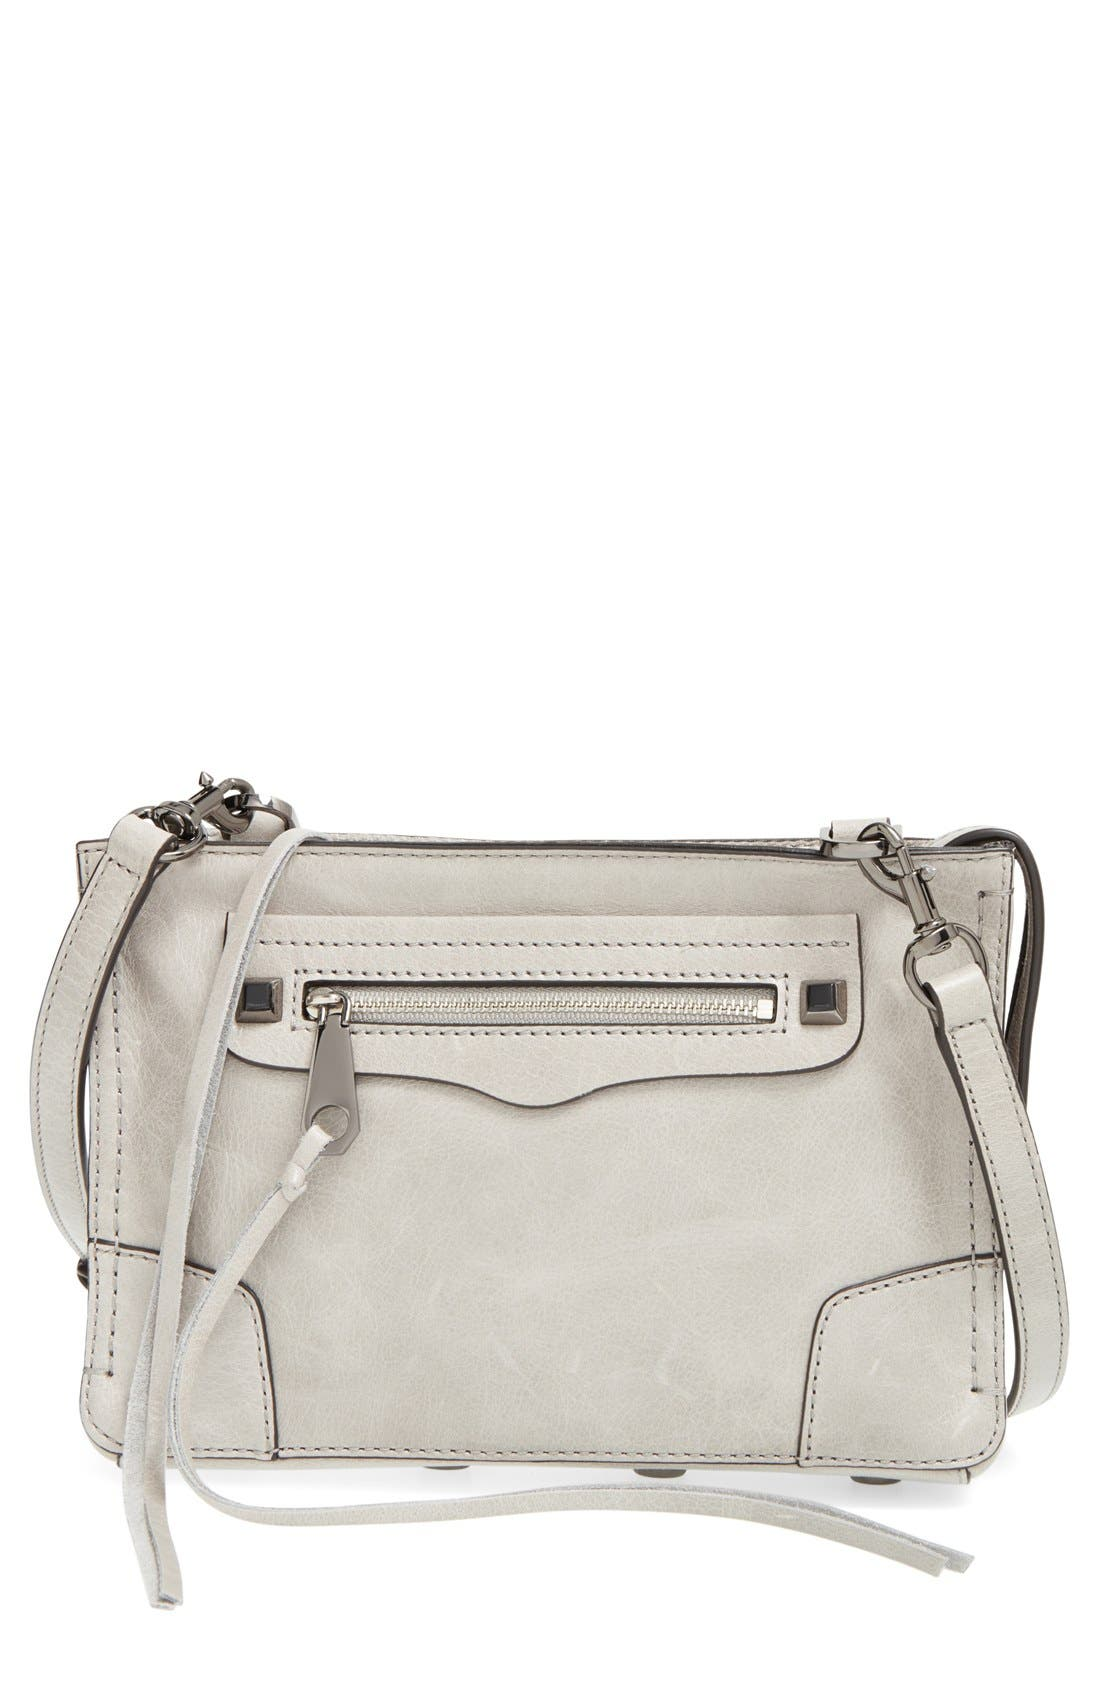 Alternate Image 1 Selected - Rebecca Minkoff 'Regan' Crossbody Bag